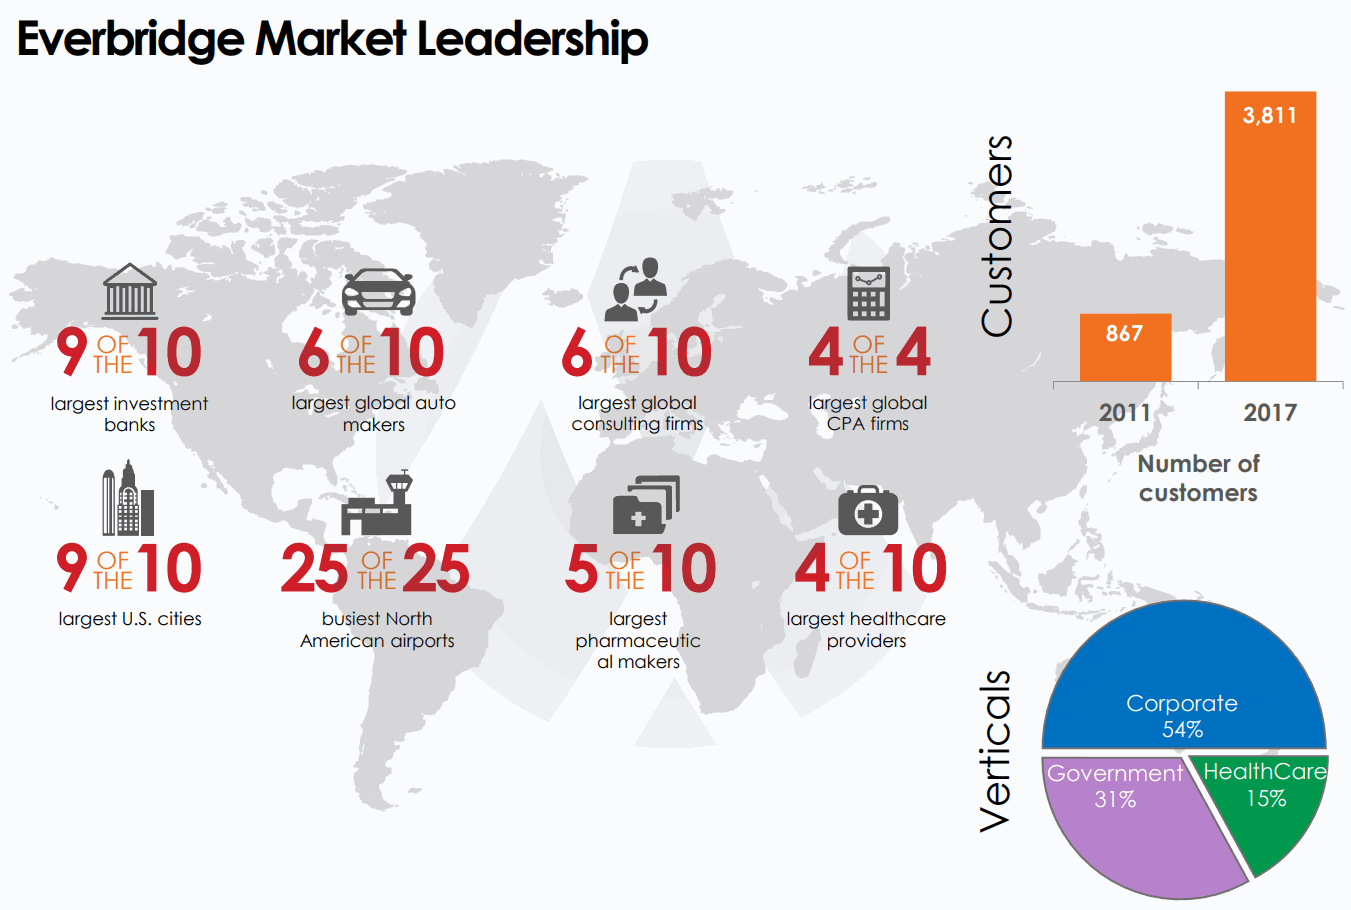 Everbridge Market Leadership